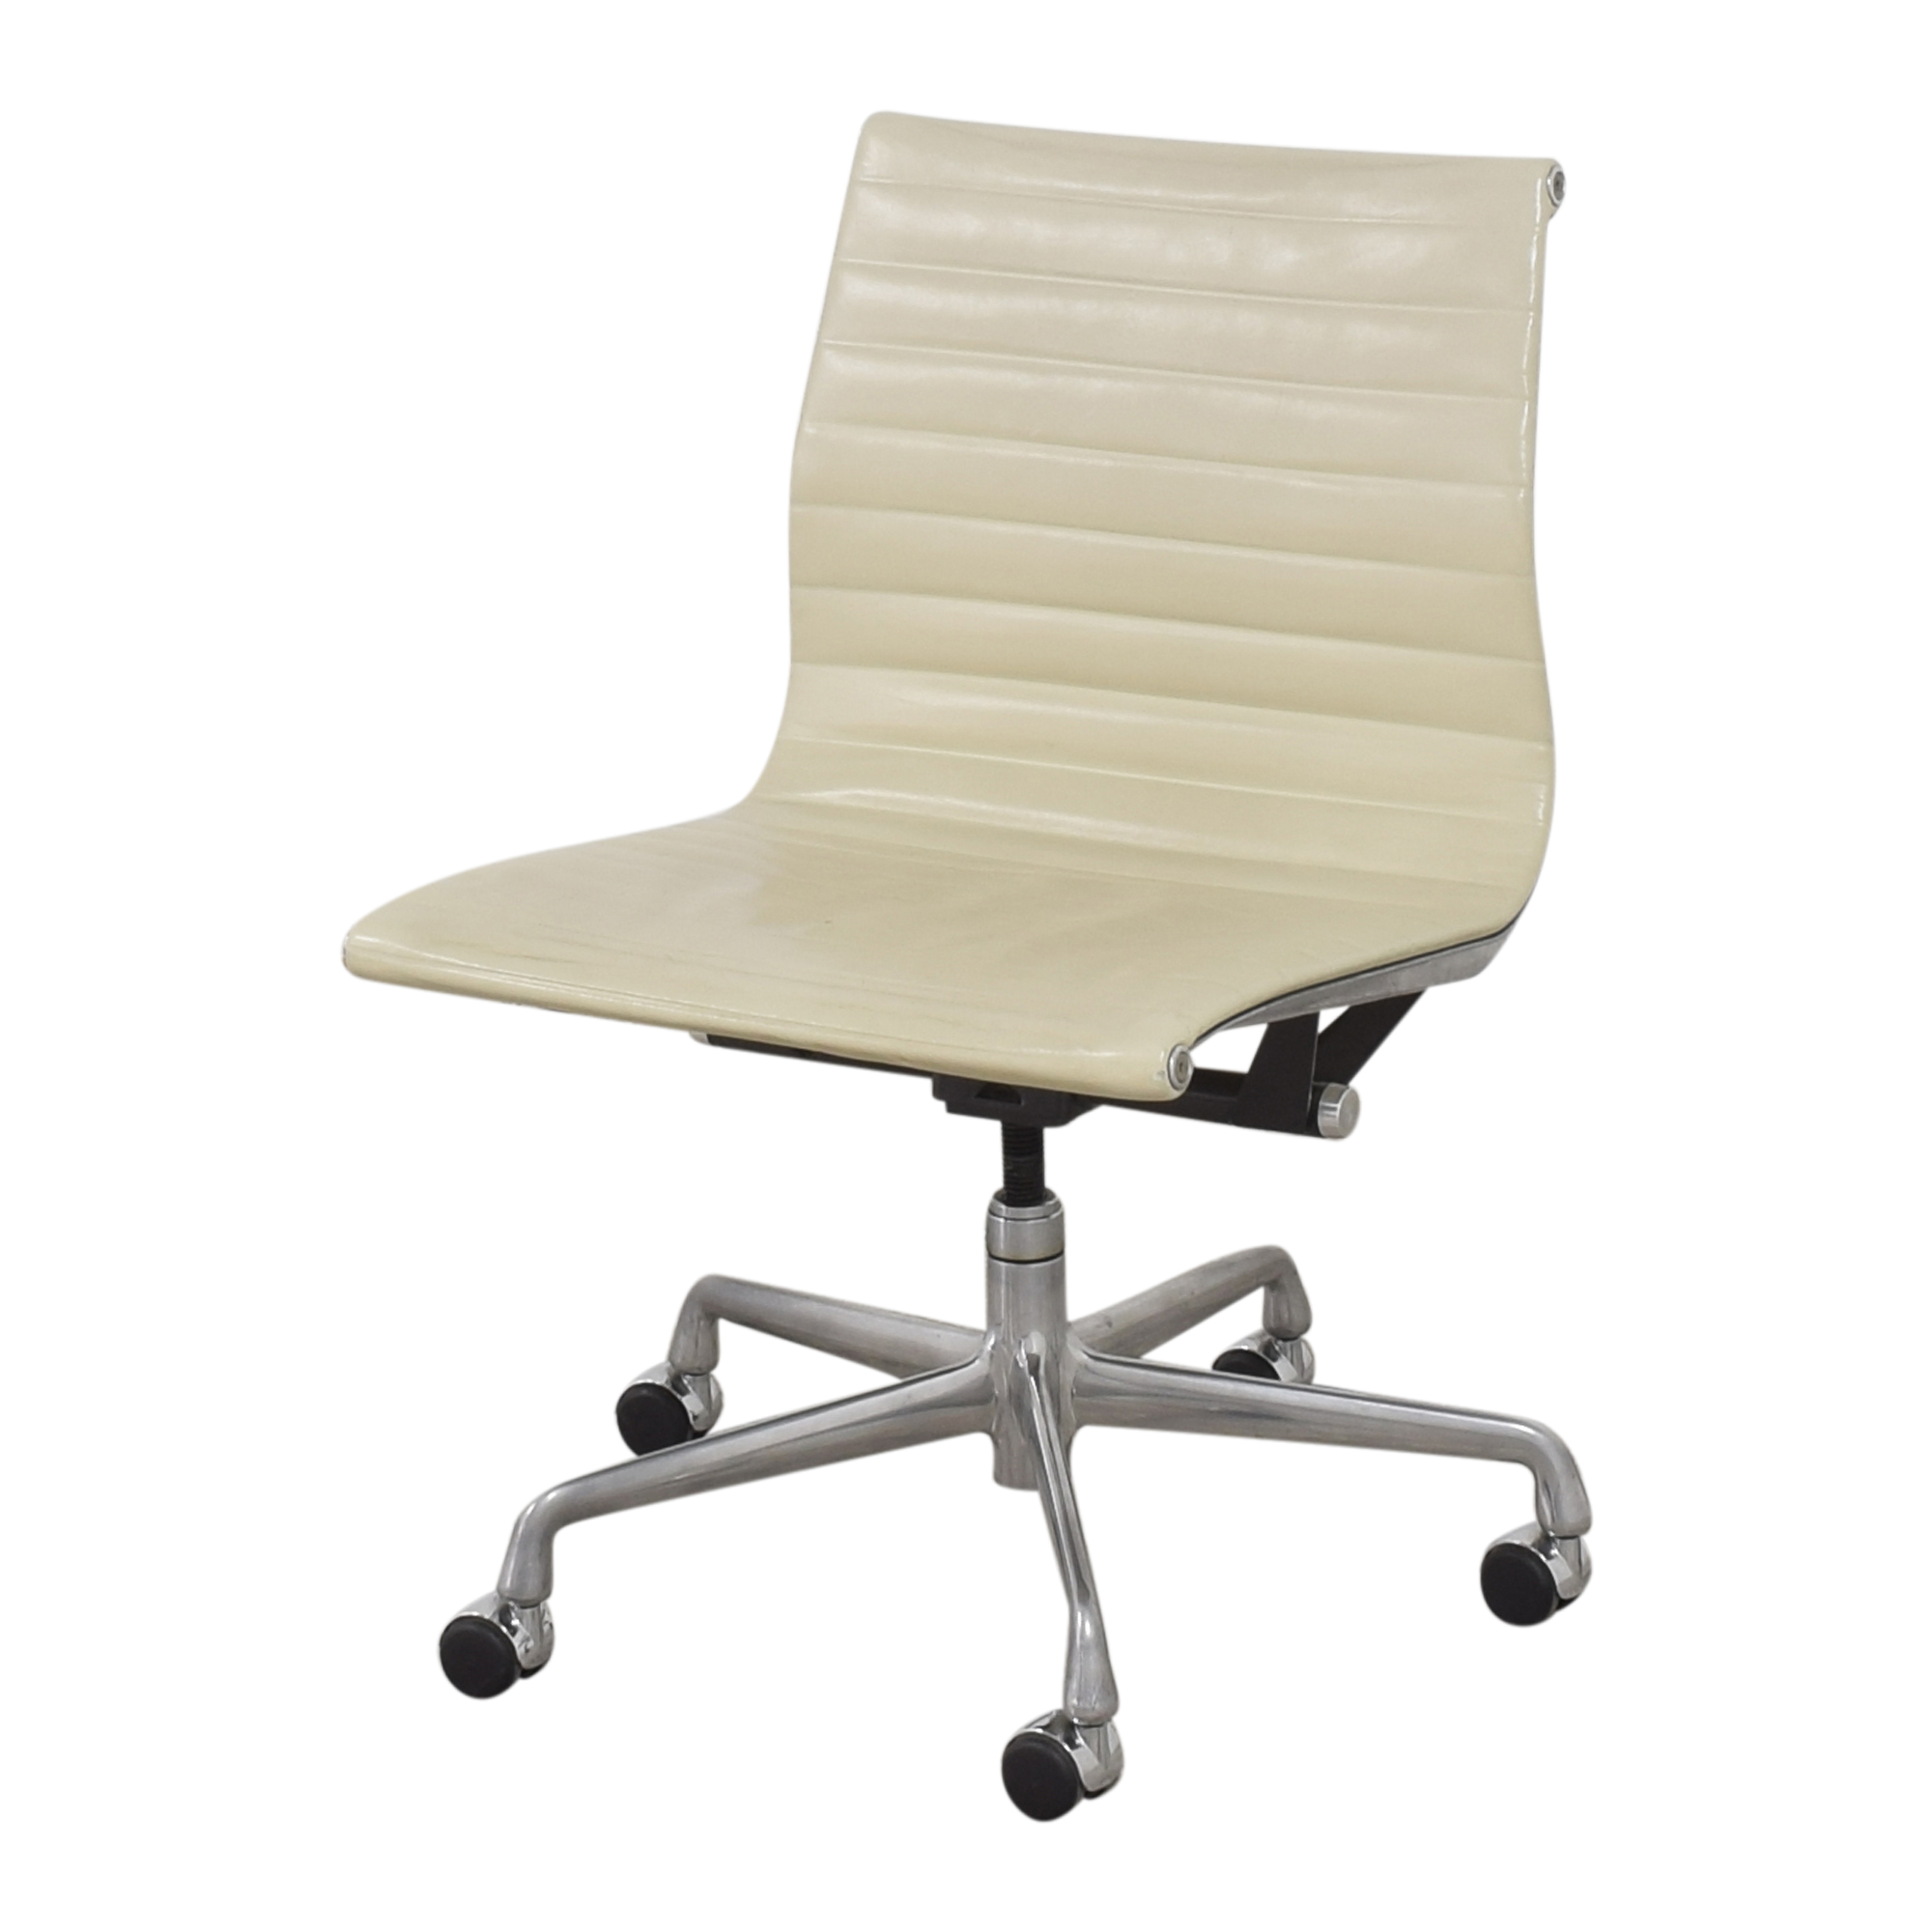 Knoll Knoll Eames Aluminum Group Management Chair coupon